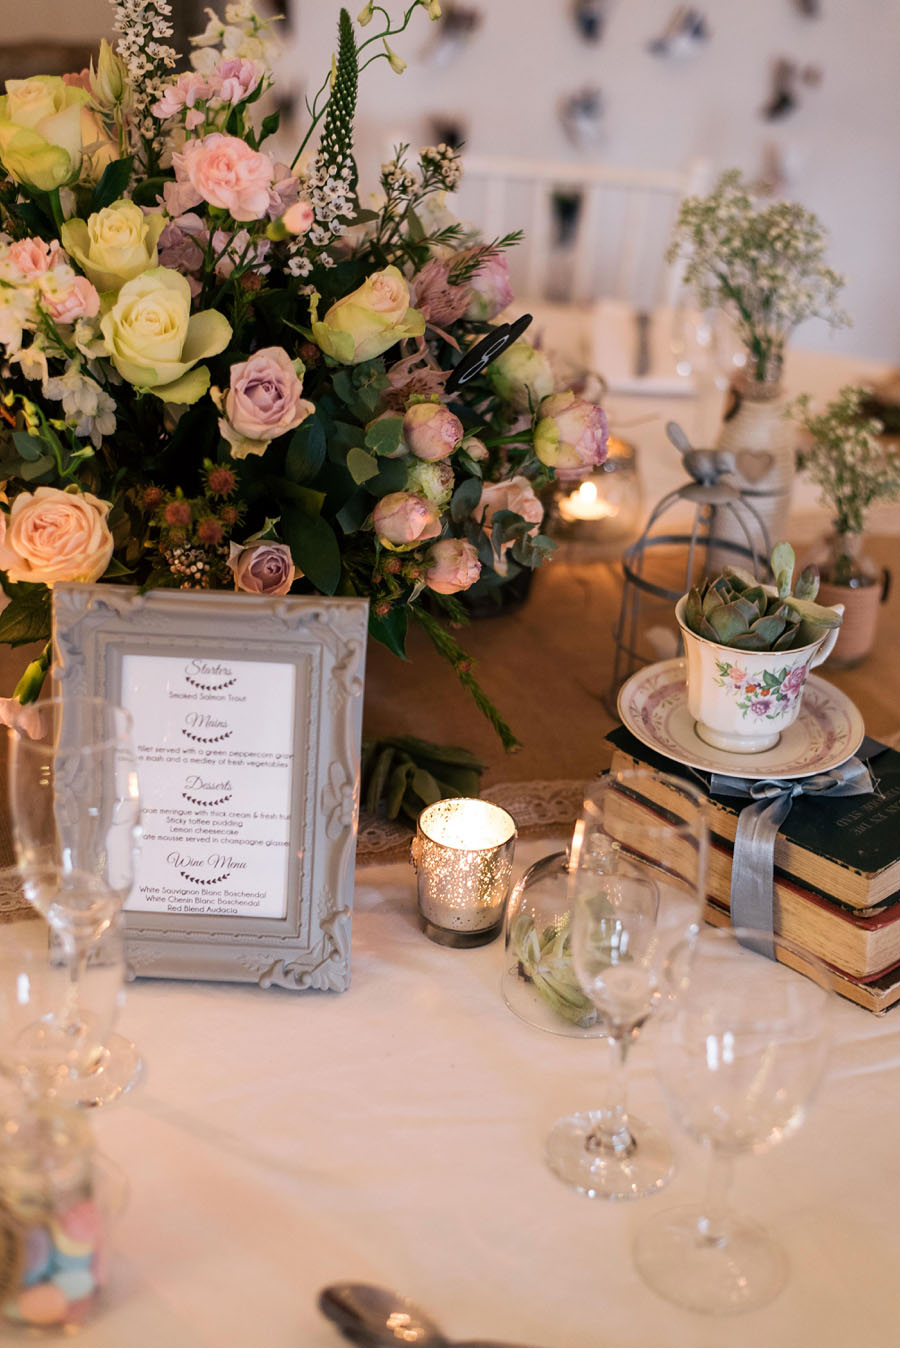 A Pretty Blush Pink Wedding with Proteas, Bunting & Lace Mike & Zoe (103)